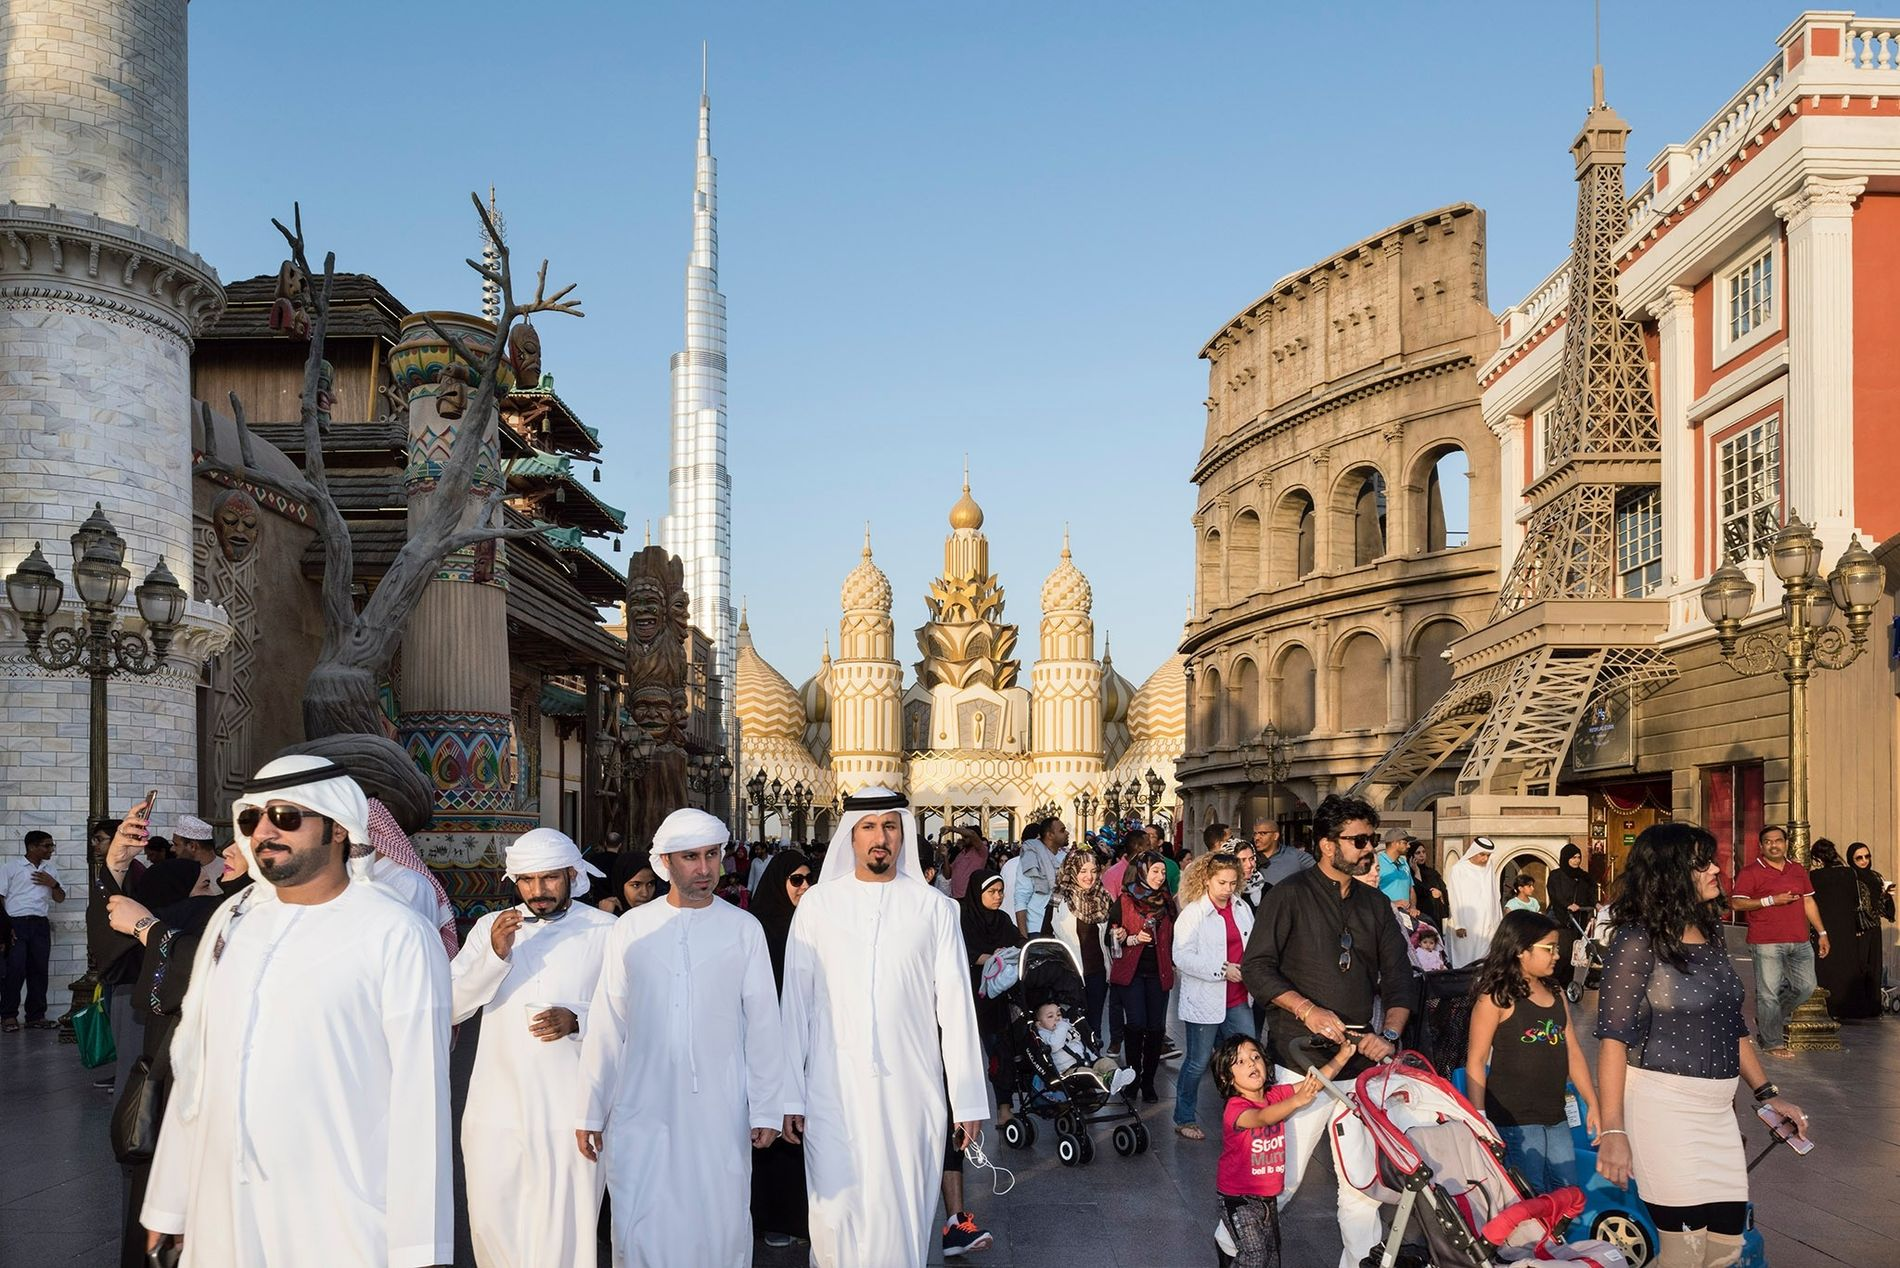 Go inside the Middle East's ultramodern city of extravagance